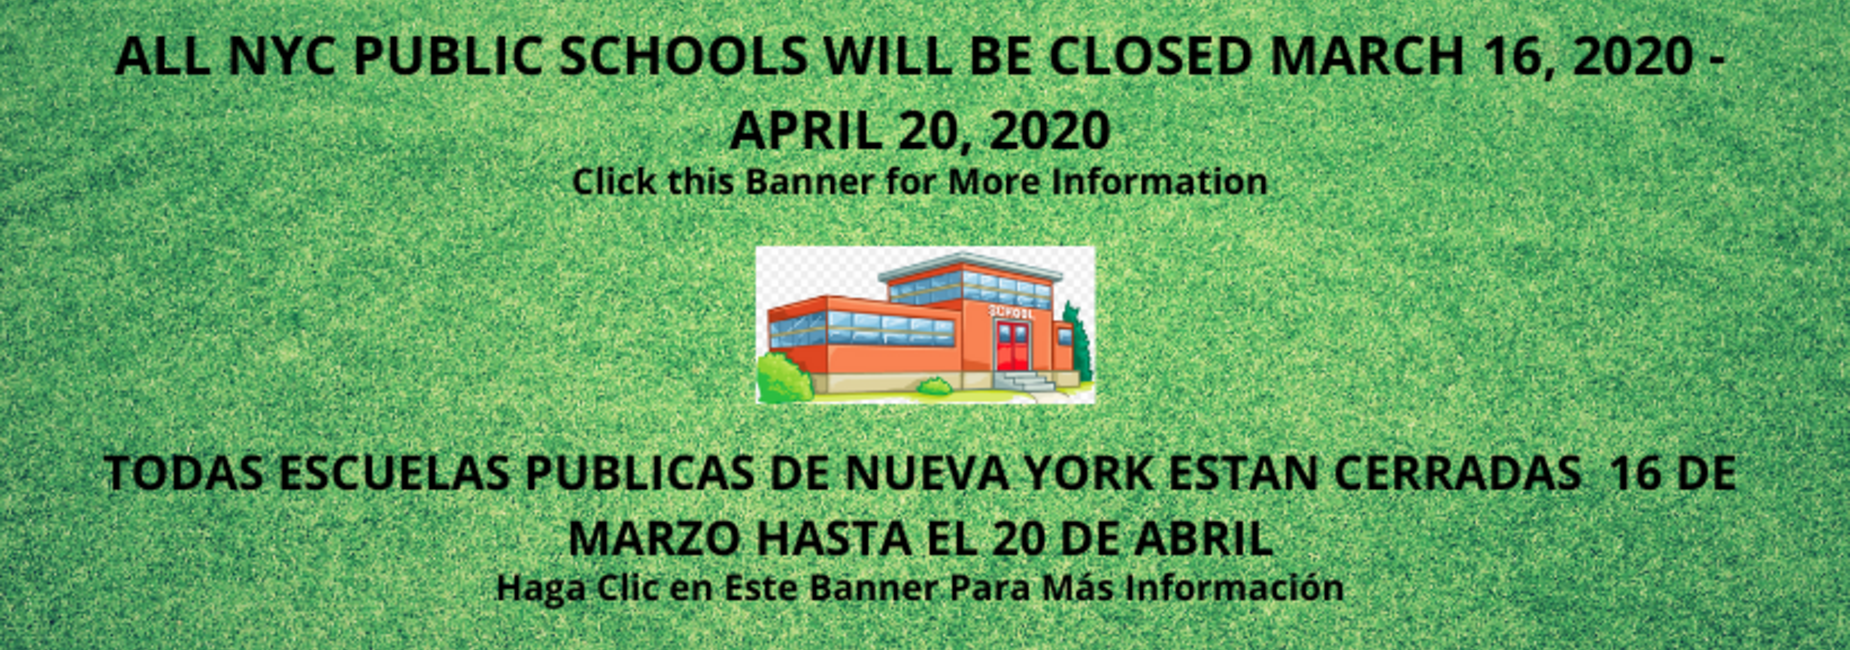 GREEN BANNER ANNOUNCING SCHOOLS ARE CLOSED DUE TO COVID 19